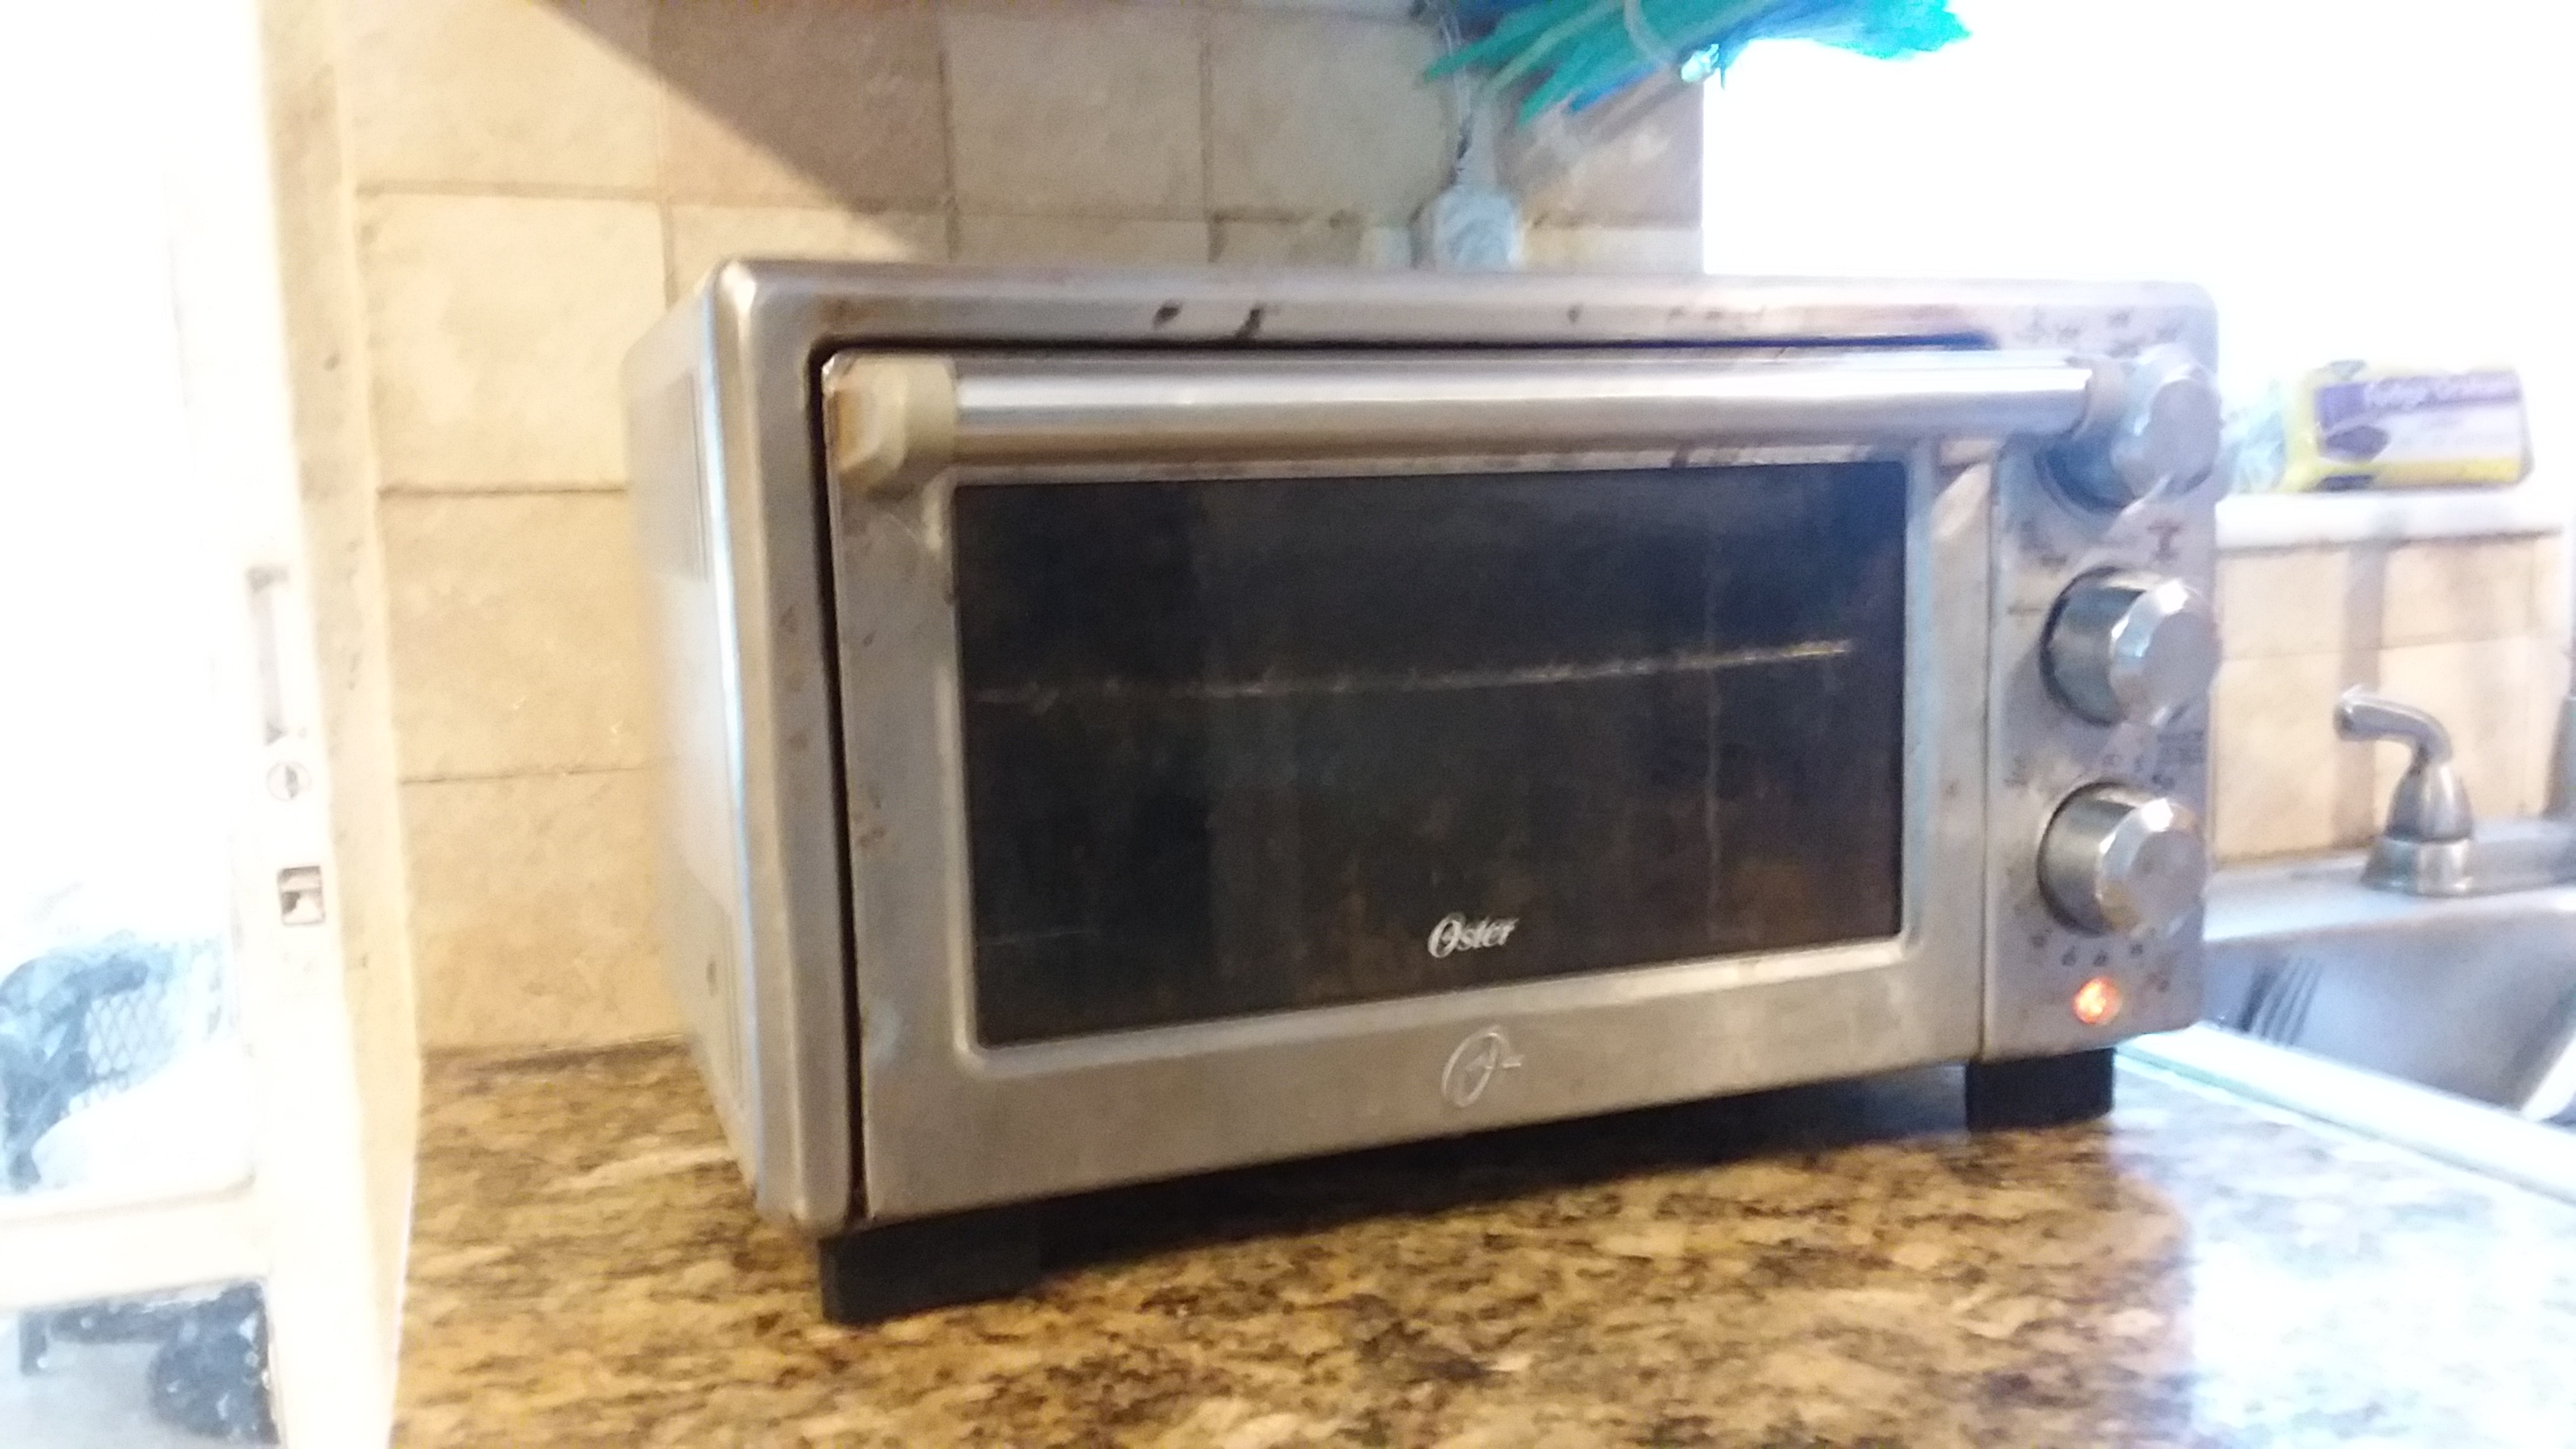 TOASTER OVEN OSTER stainless steel $25.00 WORKS GREAT